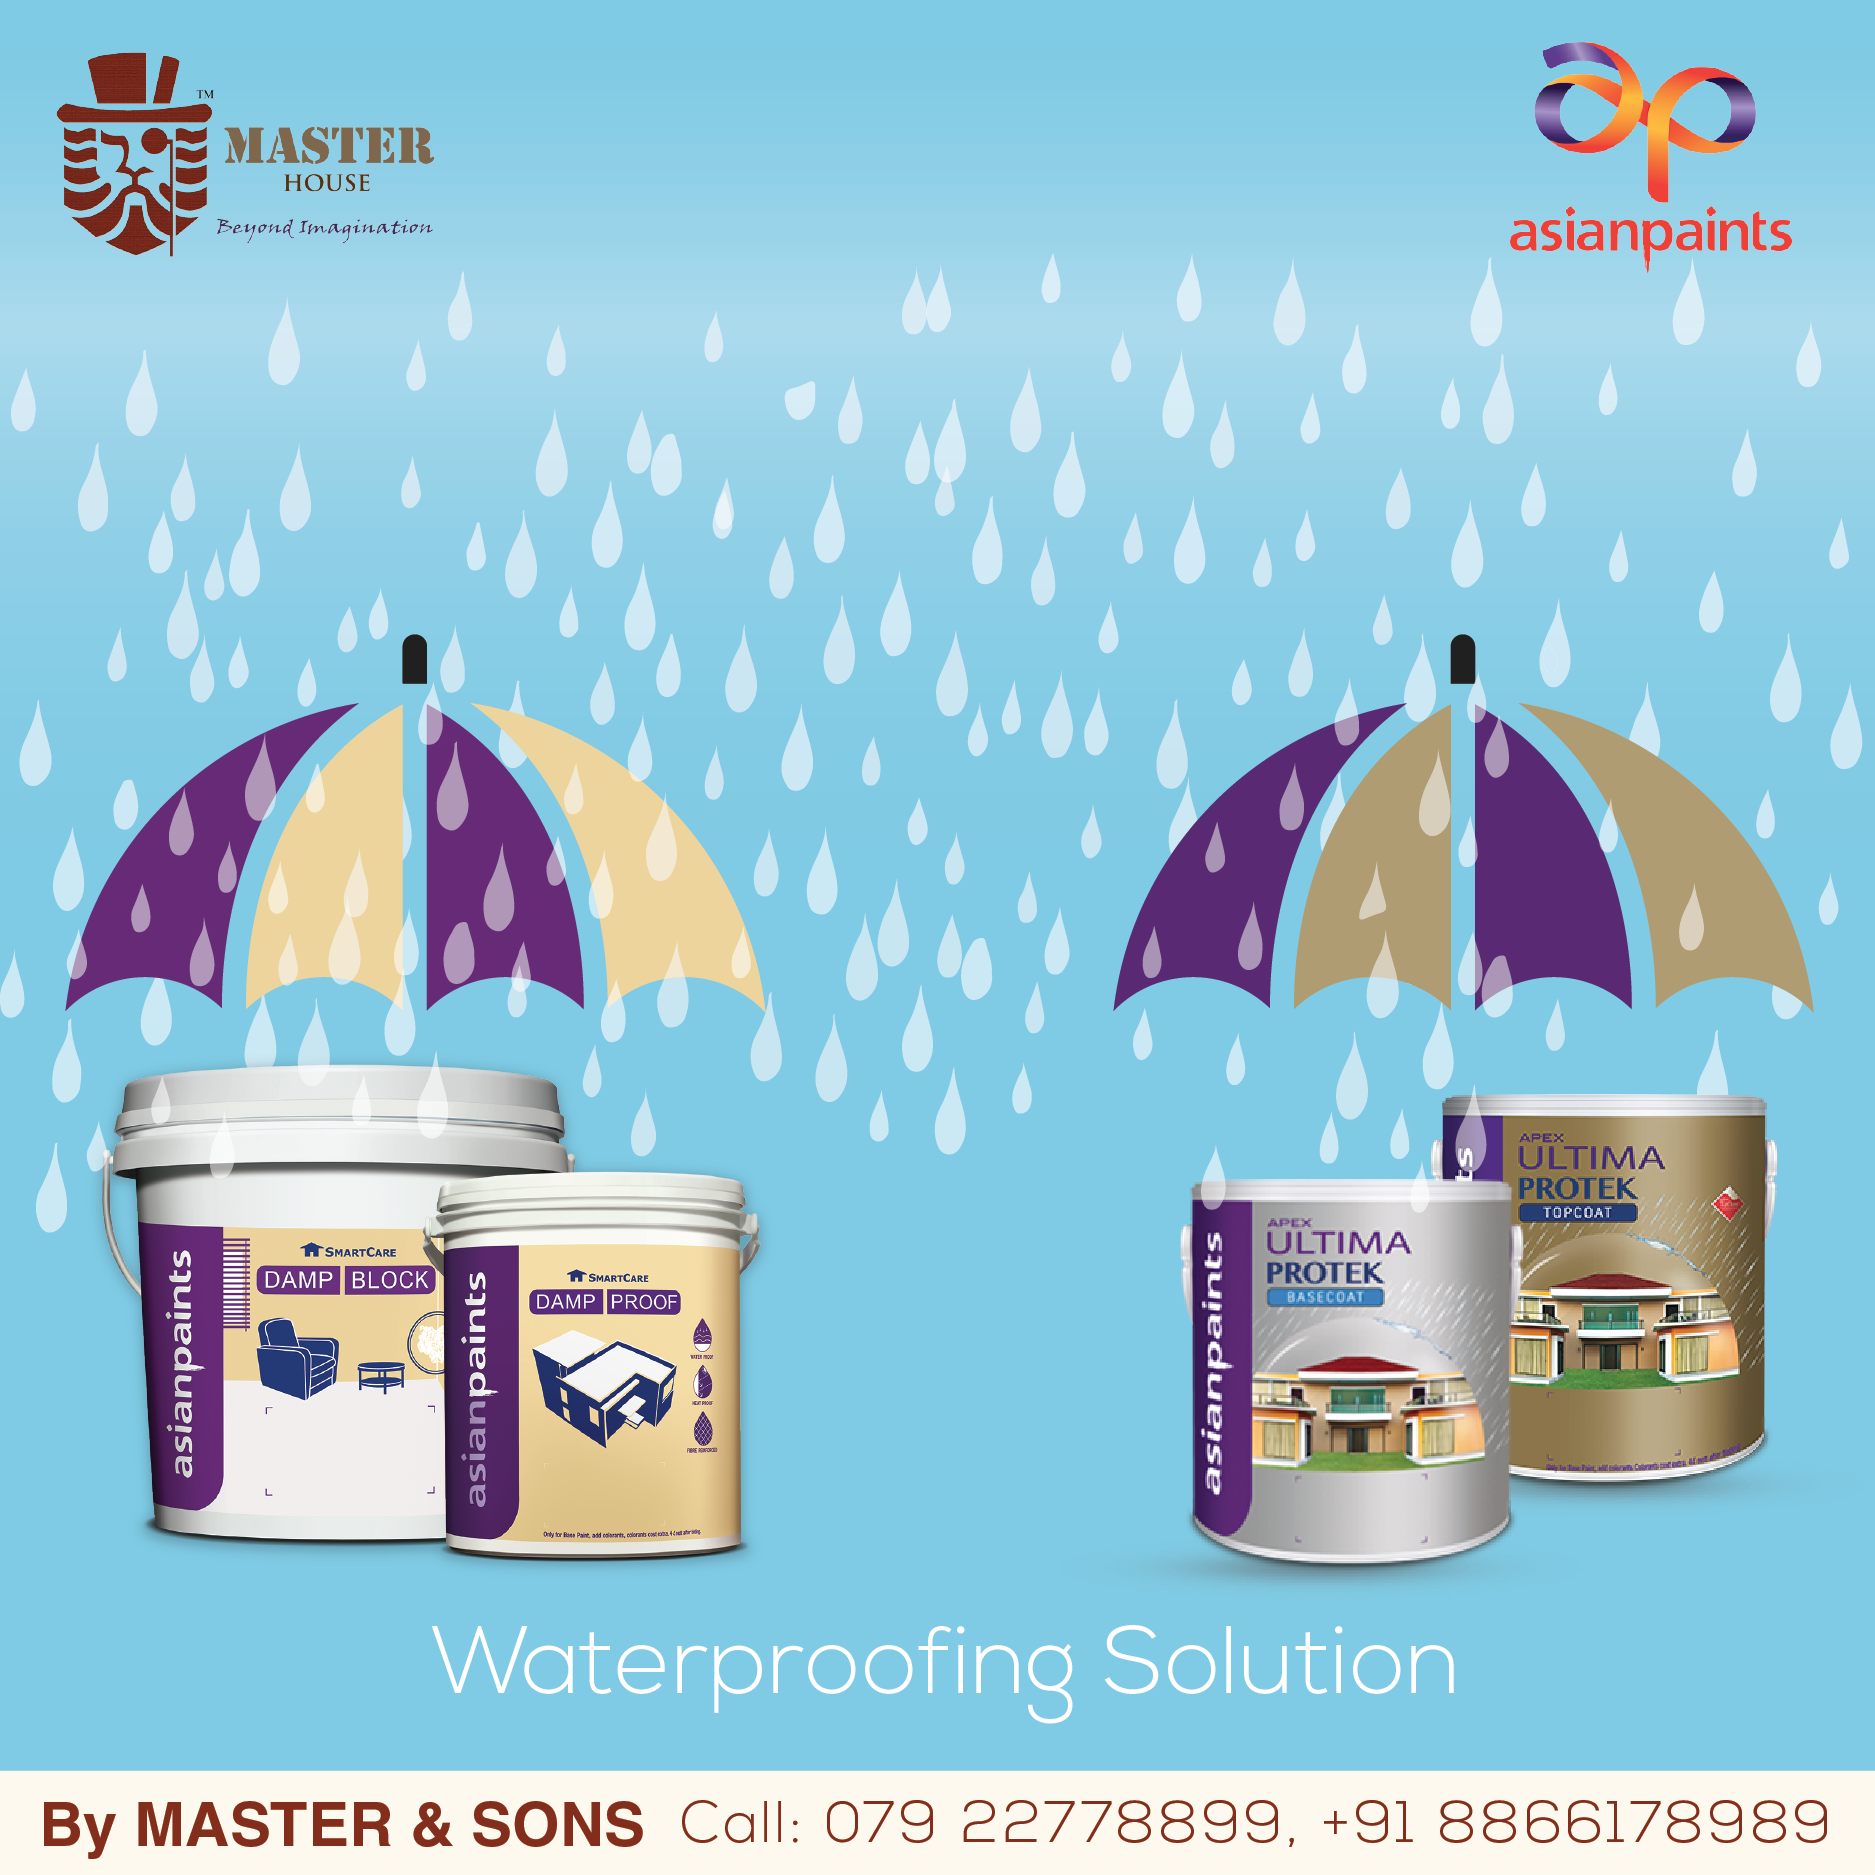 Waterproofing Solution Call Us Or Visit Our Store Wallpaper Walldecals Walltattoo Walltexture Paintingservi Painting Services Asian Paints Textured Walls